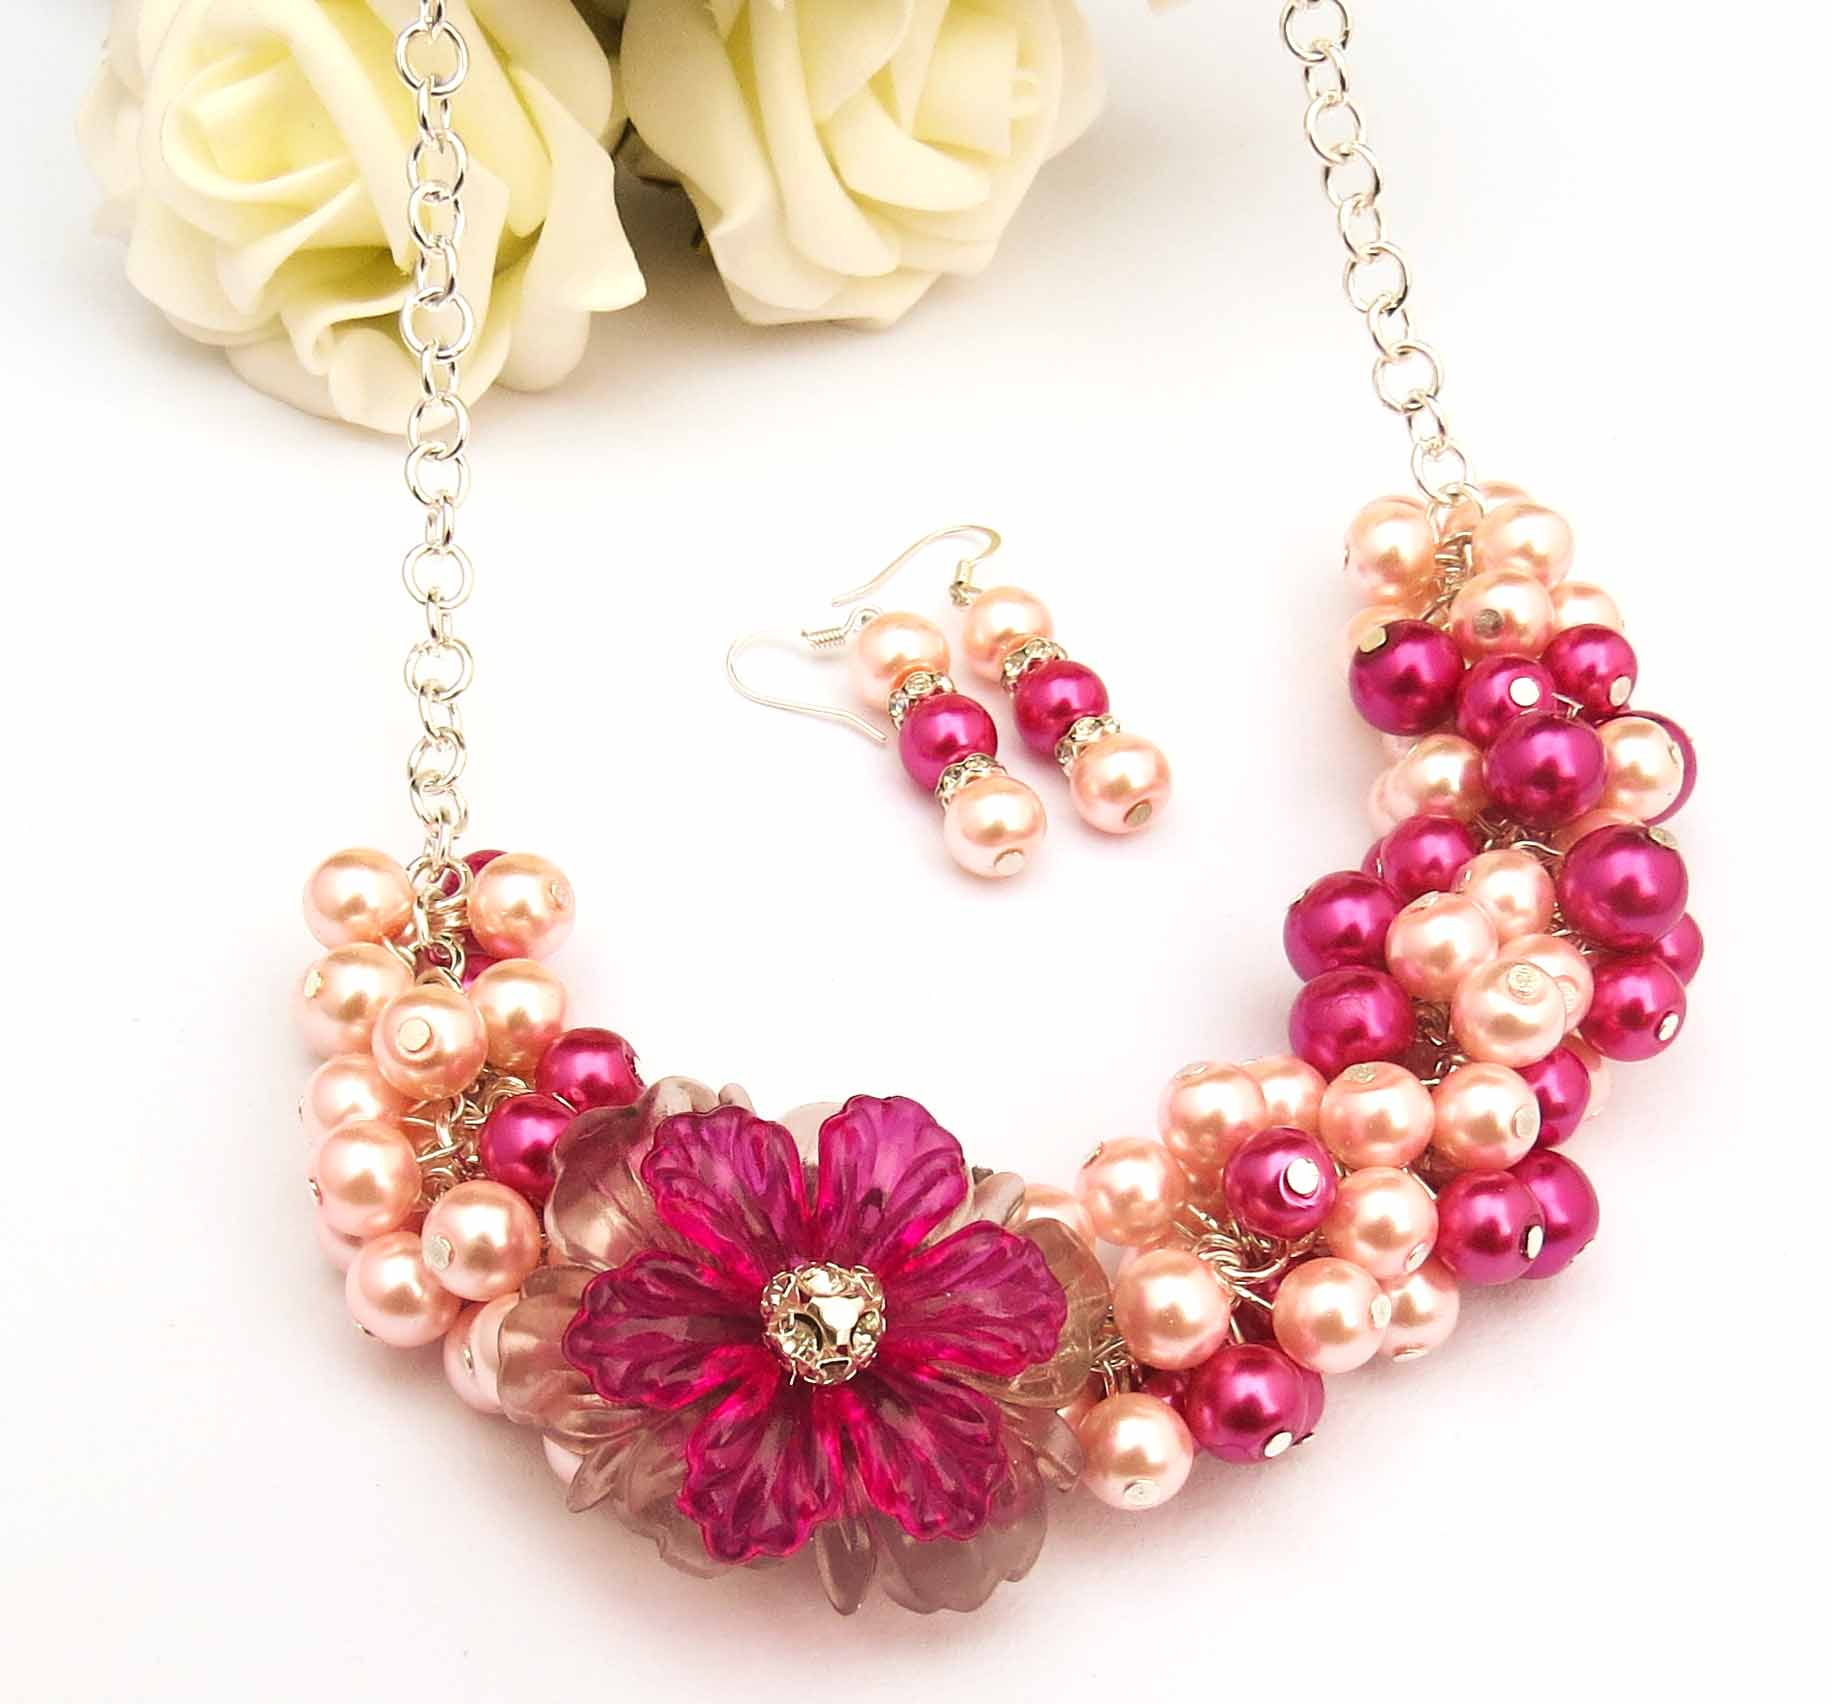 Pink Chunky Necklace Pearl Statement Necklace Vintage Style